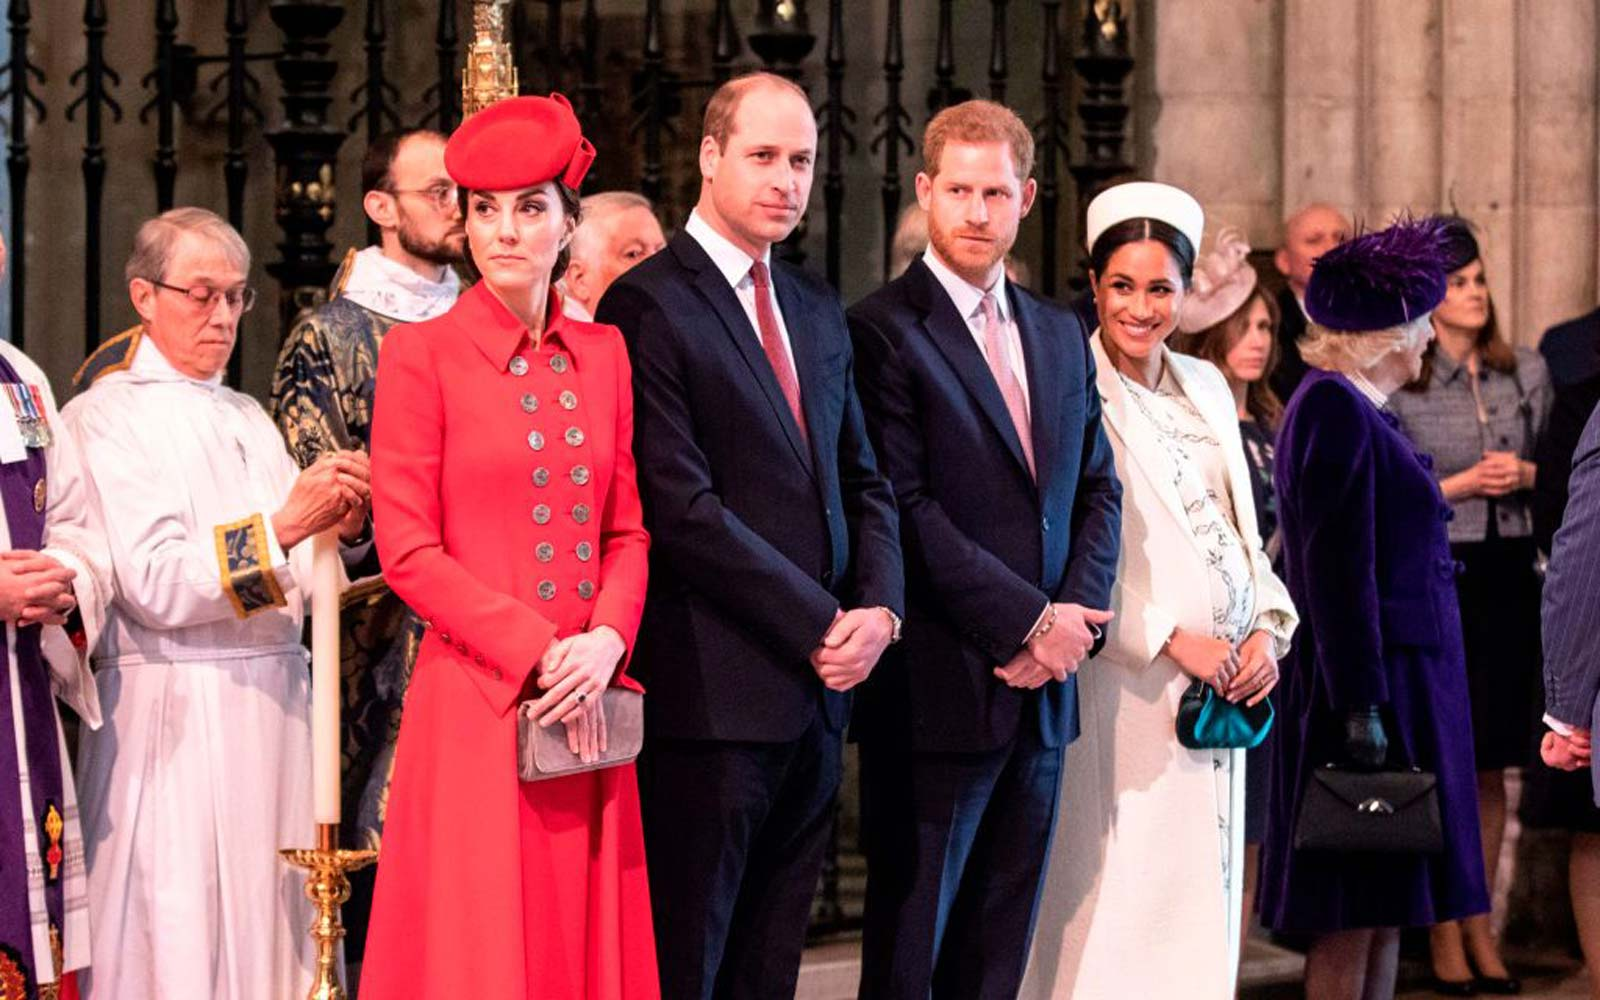 Meghan Markle and Prince Harry Have Split Royal Households From Kate Middleton and Prince William